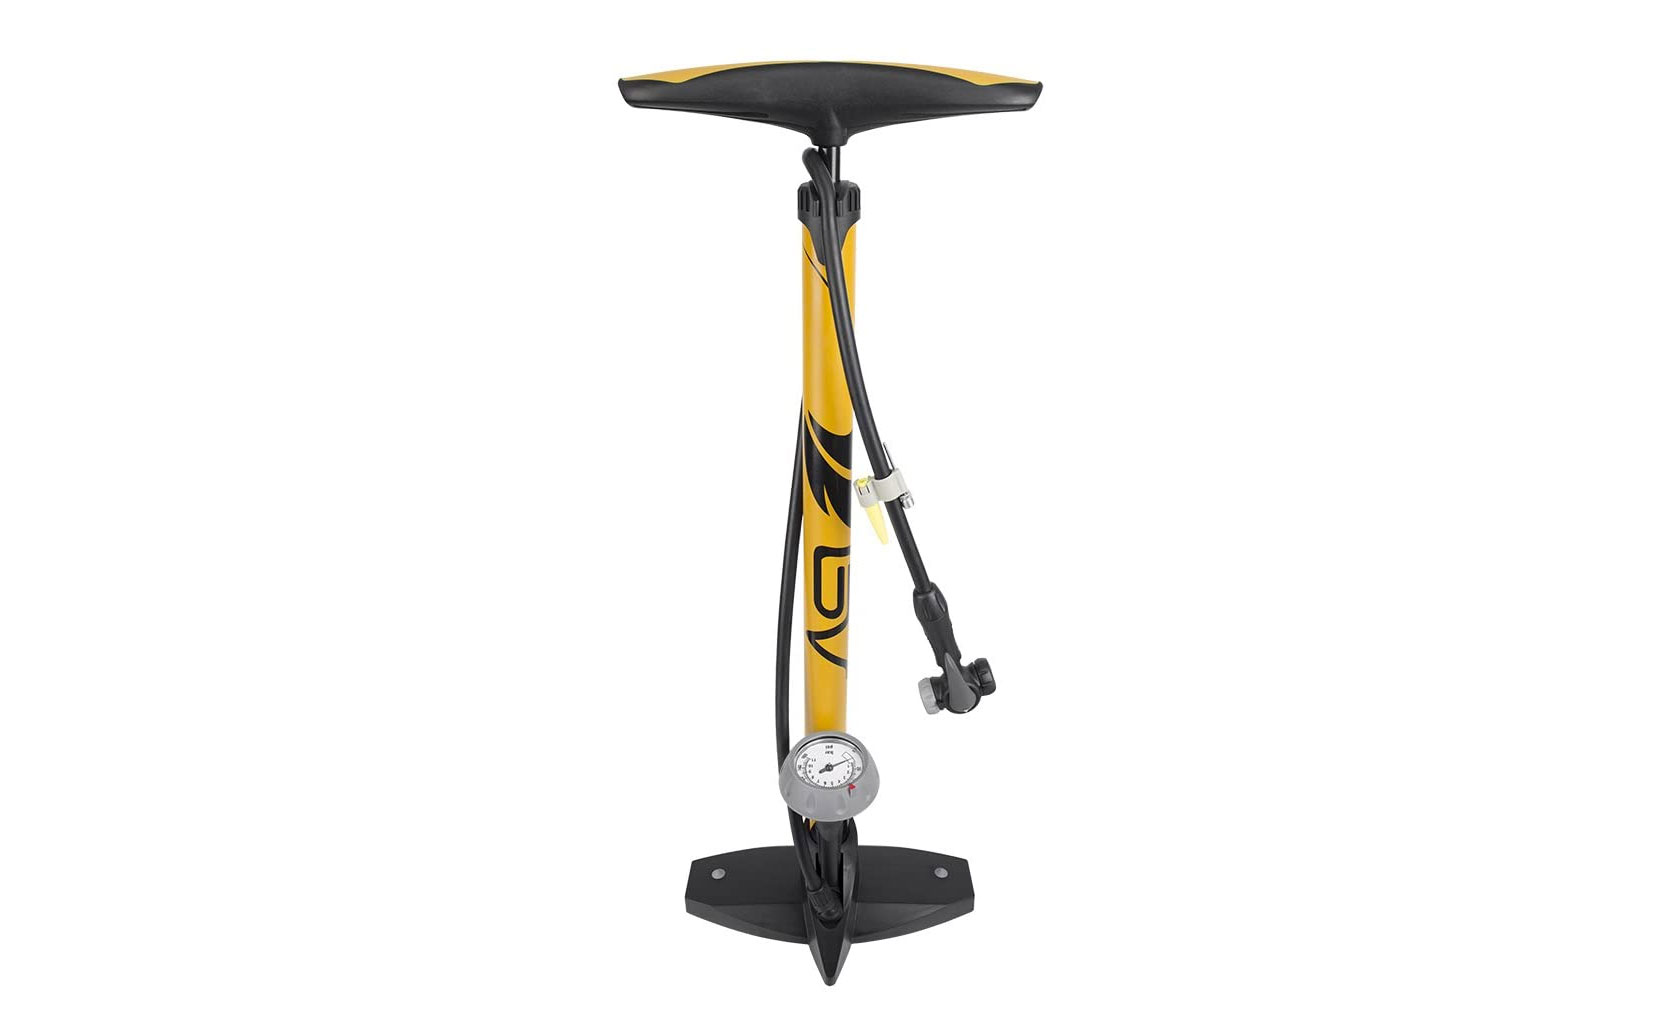 bv ergonomic floor pump